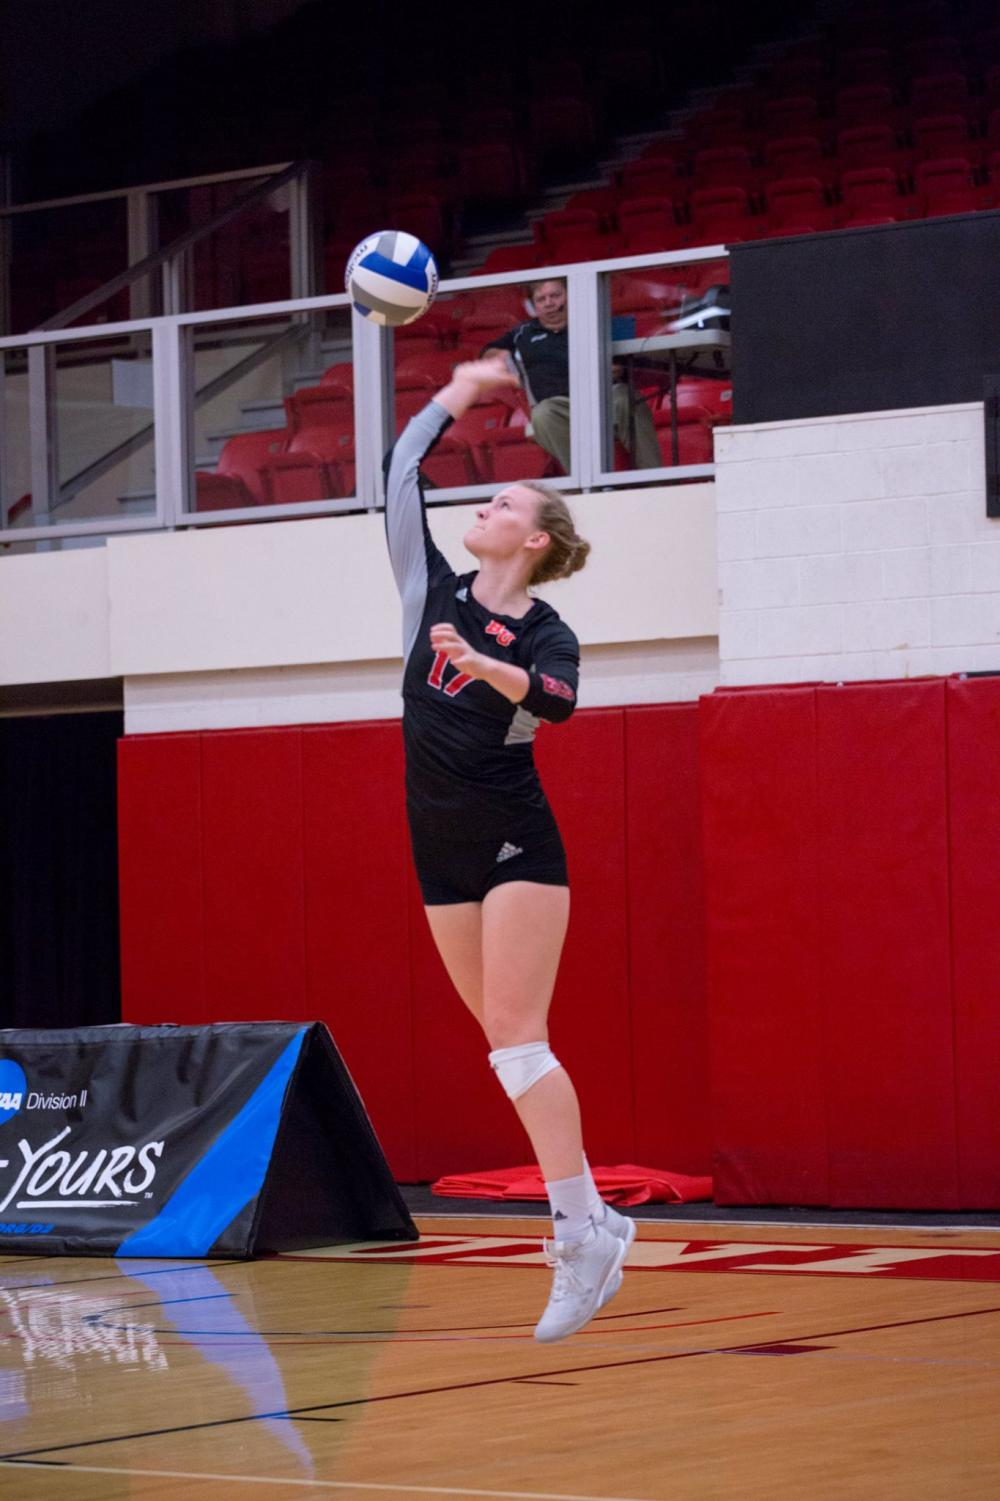 Junior middle blocker, Bekah Roth, serves the ball.